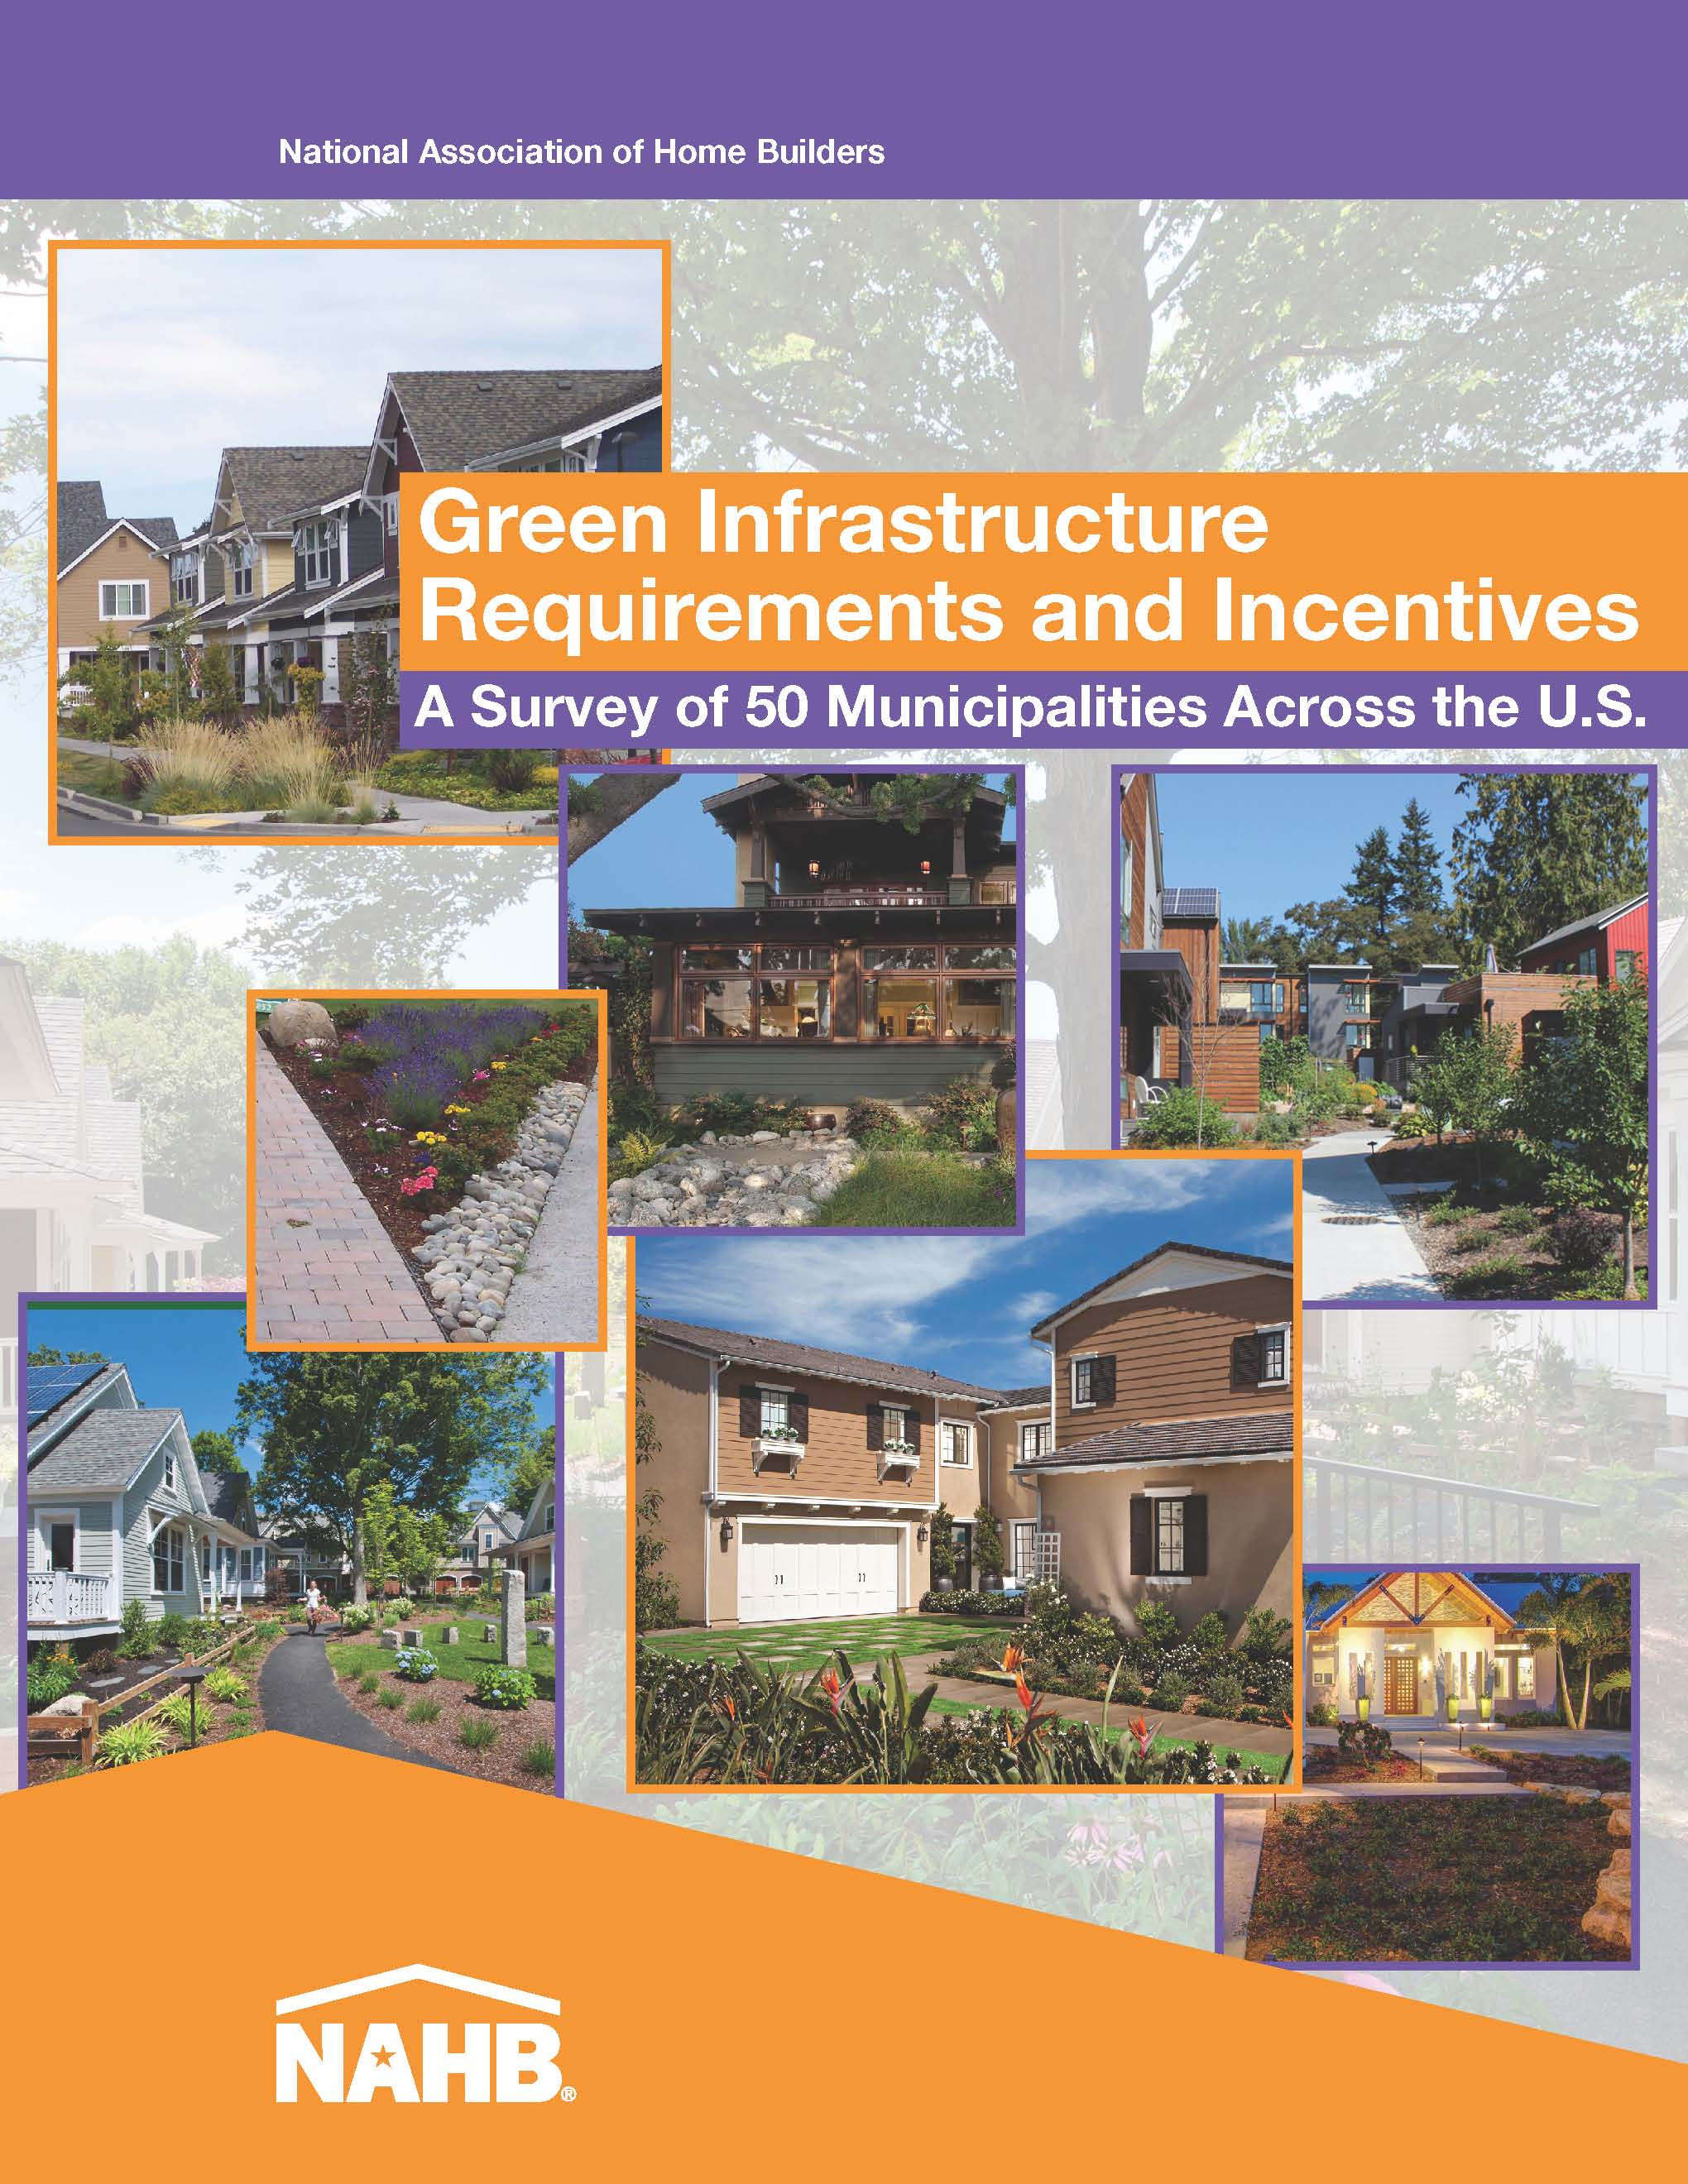 nahb_green-infrastructure-survey_2016_cover